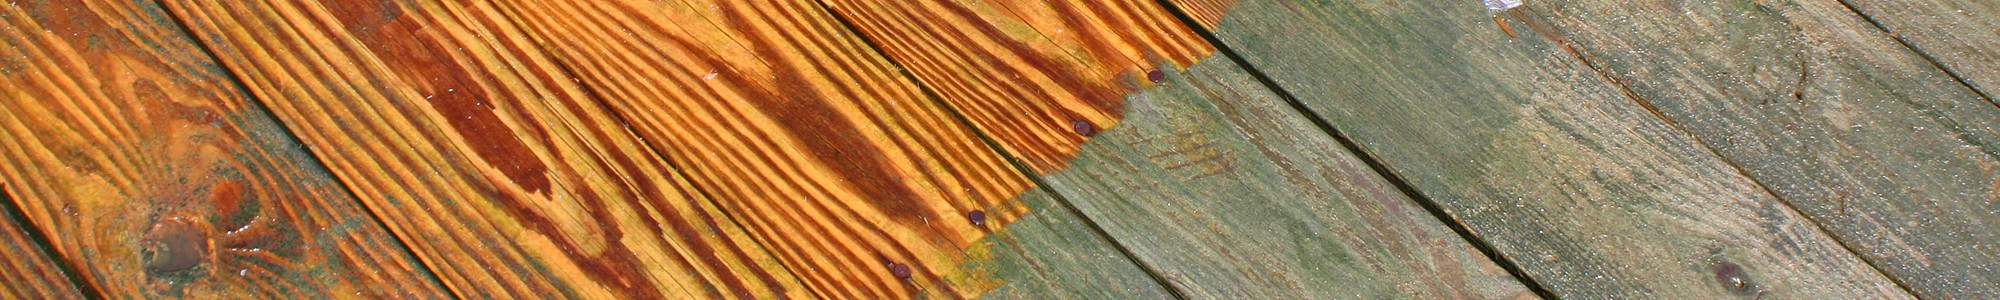 VIEW DECKING CLEANING DETAILS